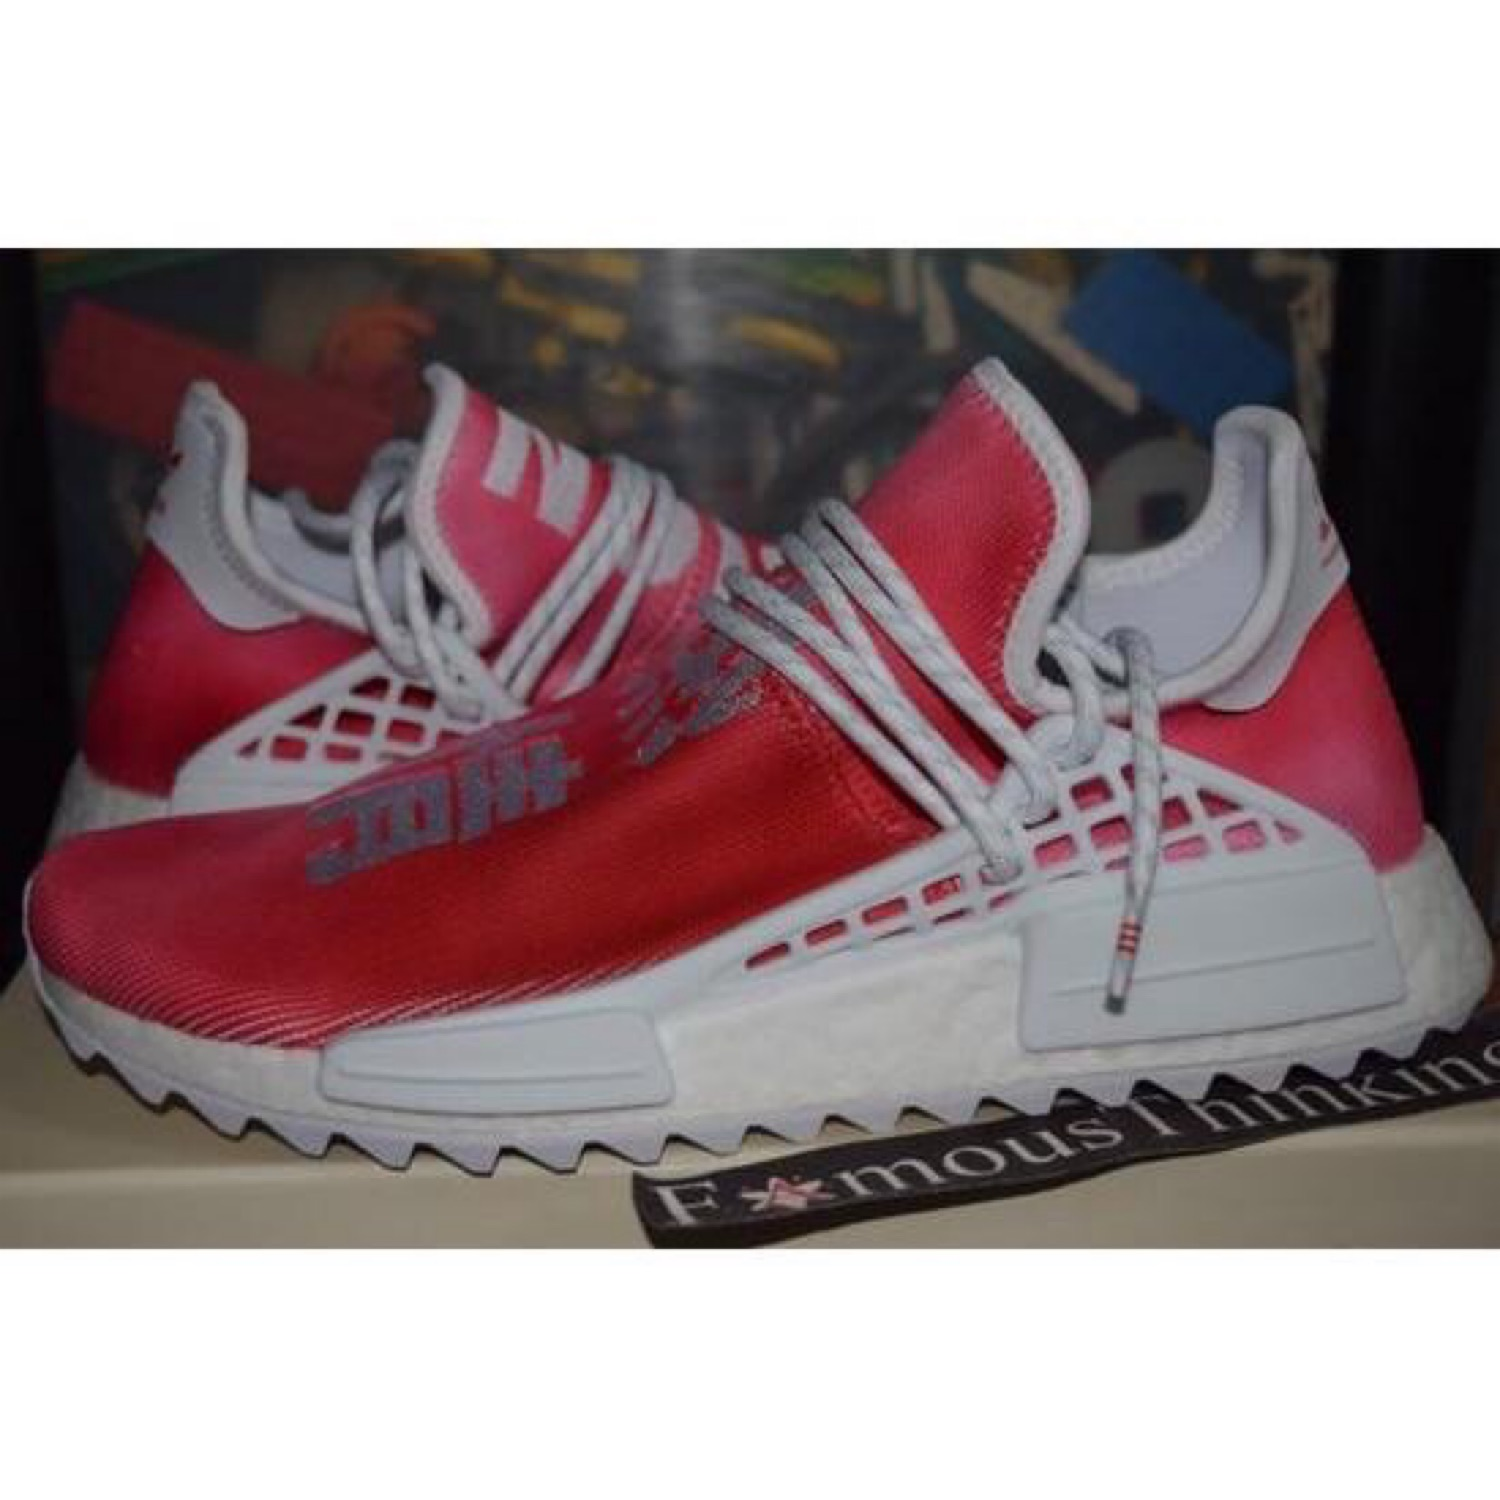 detailed look d9bb2 36891 Adidas Human Race Nmd China Red Pharrell 9.5